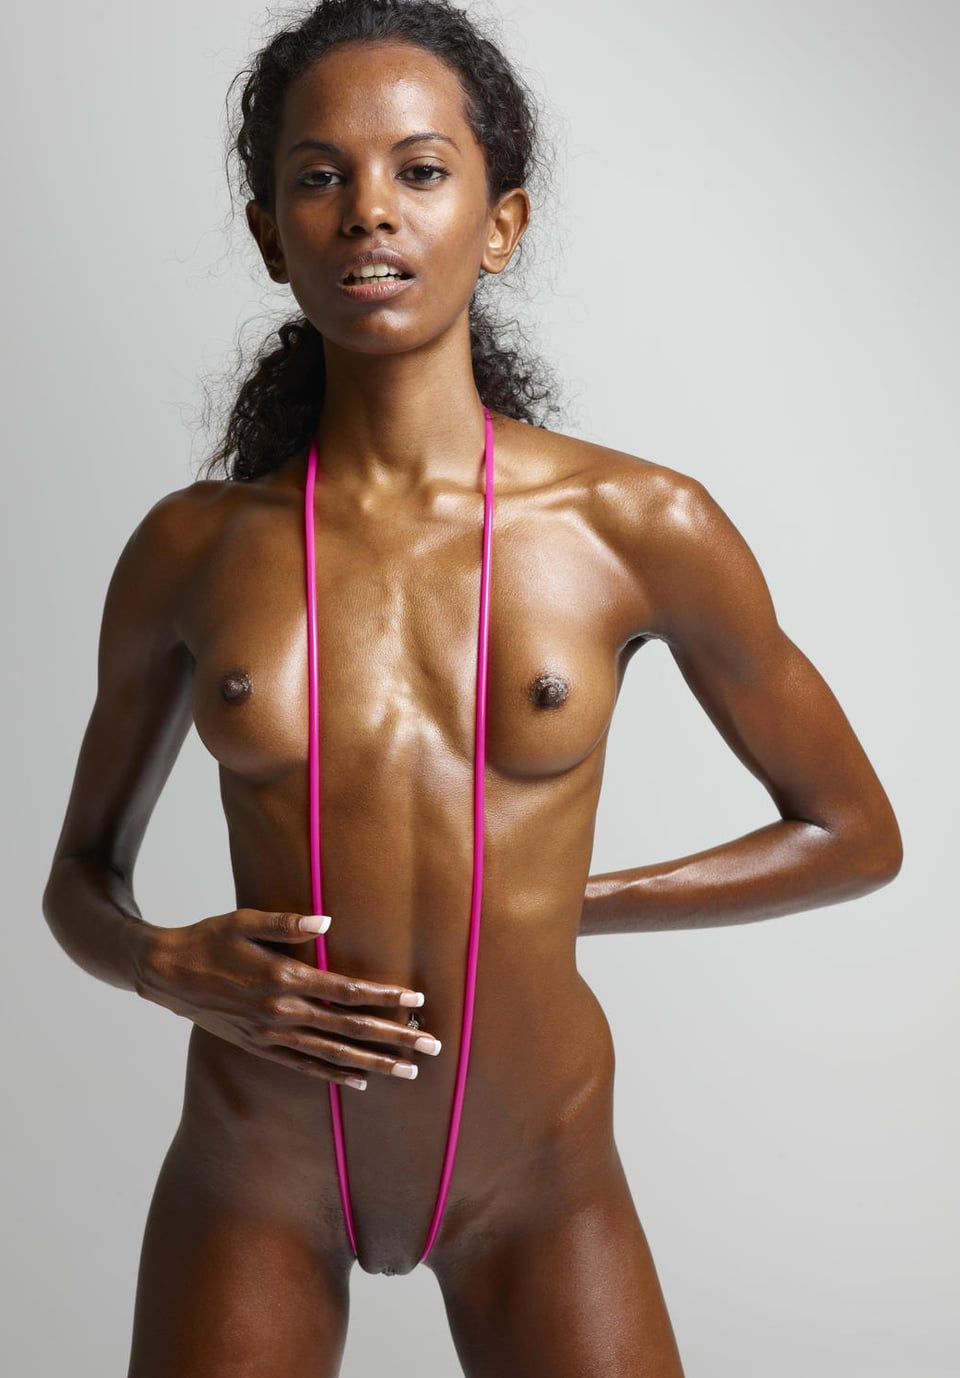 black young skinny nude black women